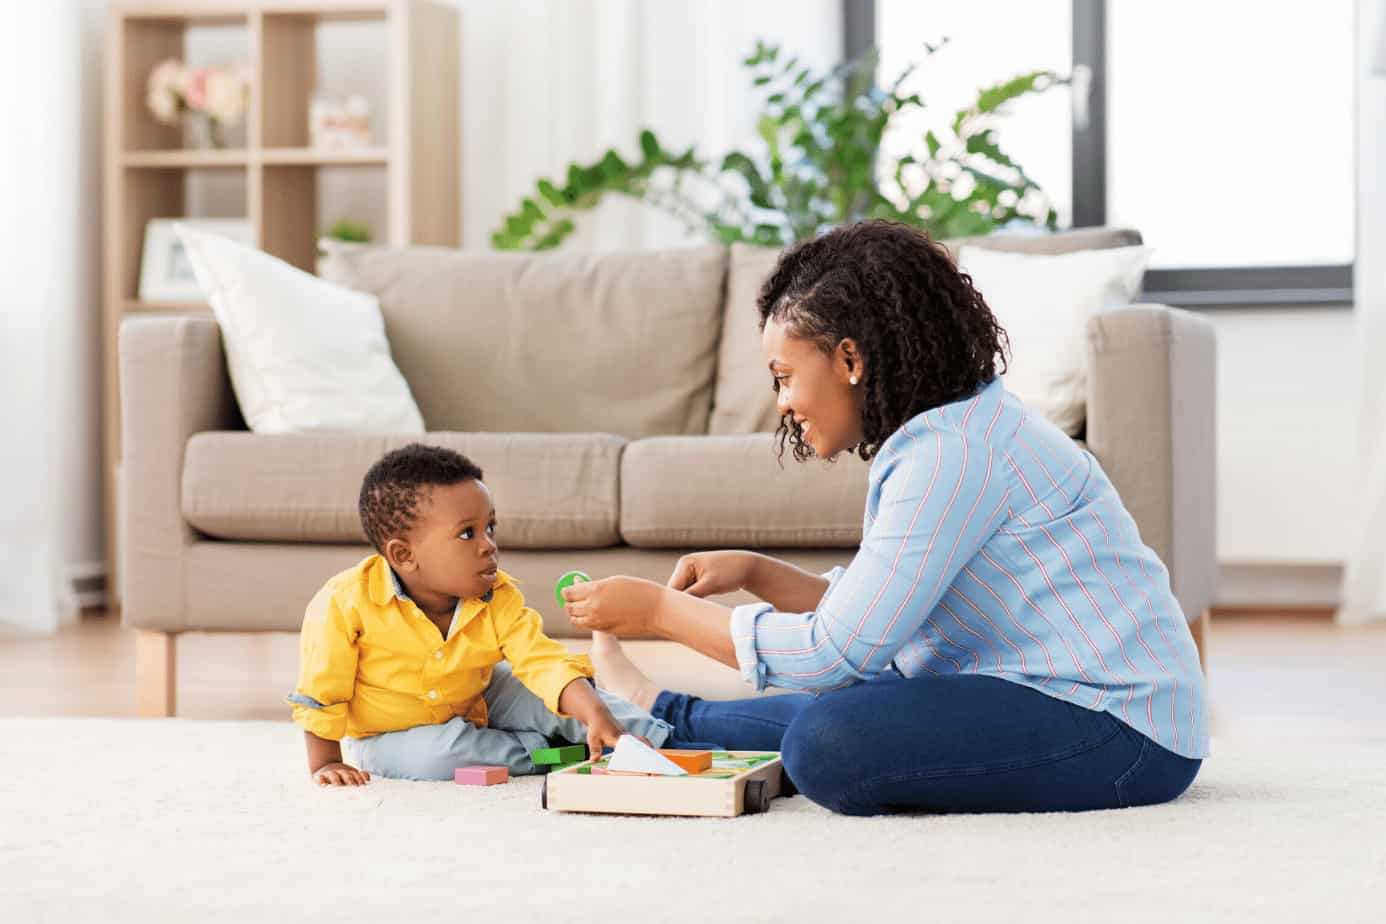 mom and toddler sitting on floor playing getting ready to get toddler excited about cleaning up the toys